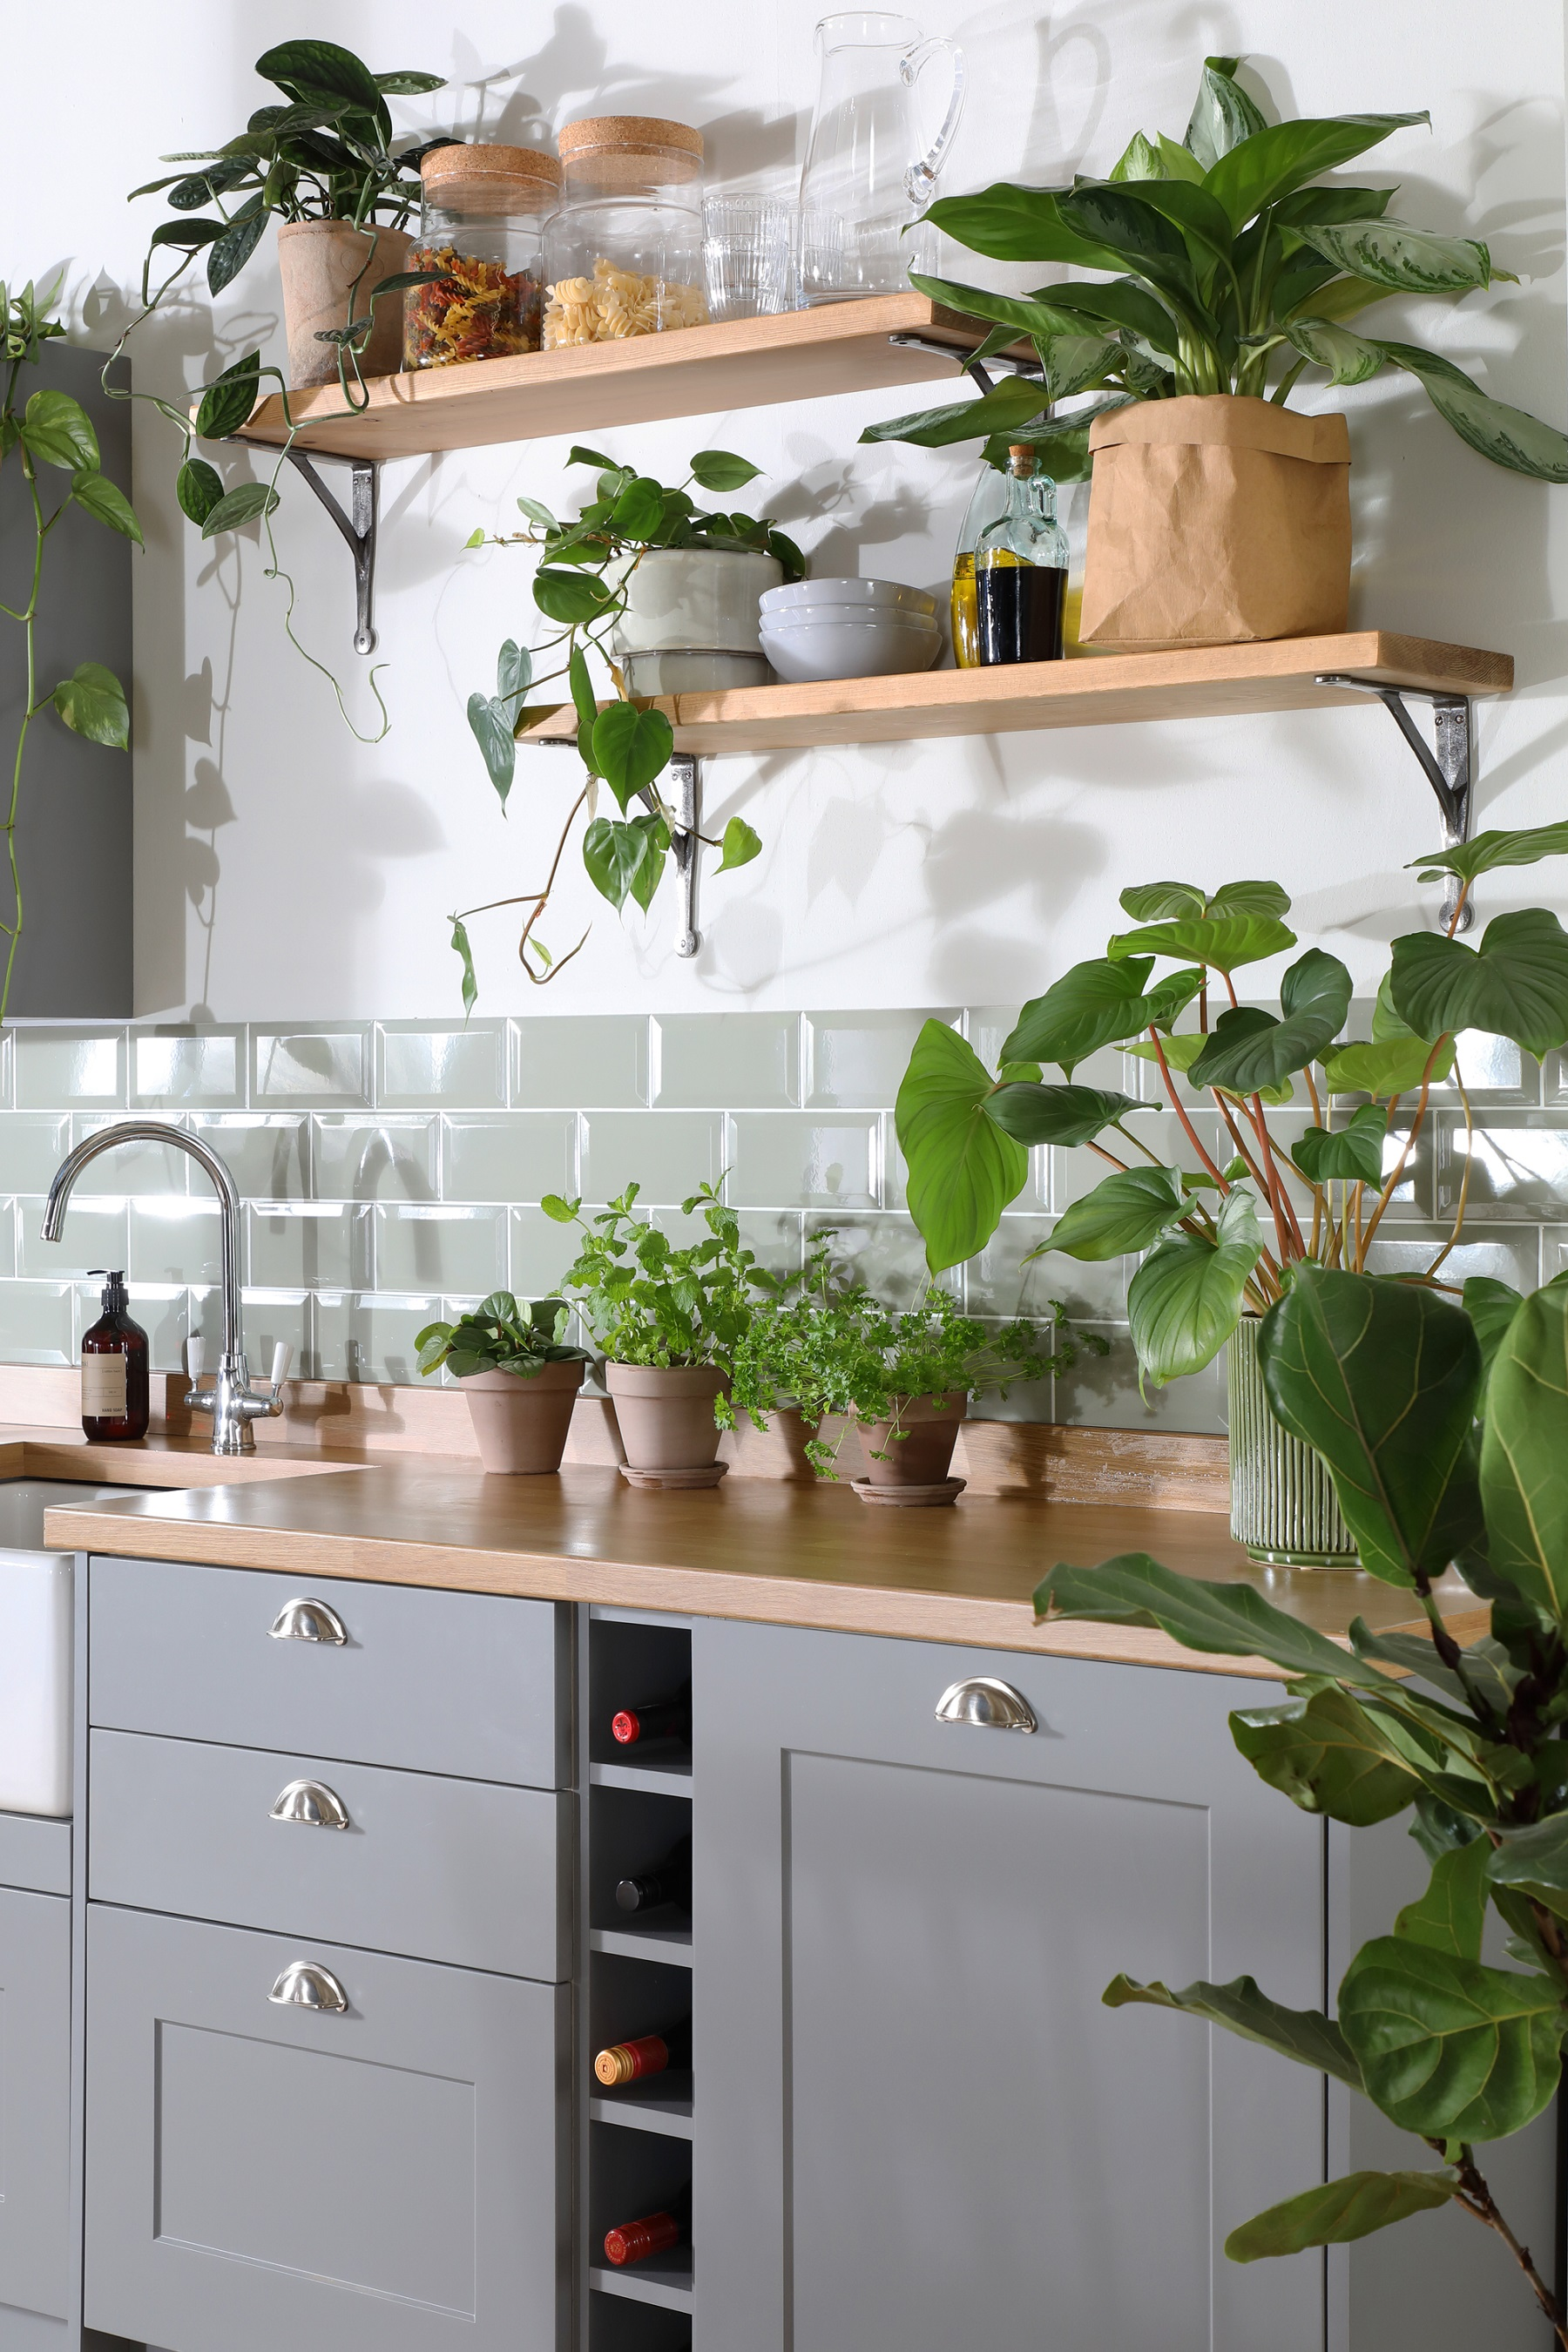 Kitchen island with many indoor plants and greenery